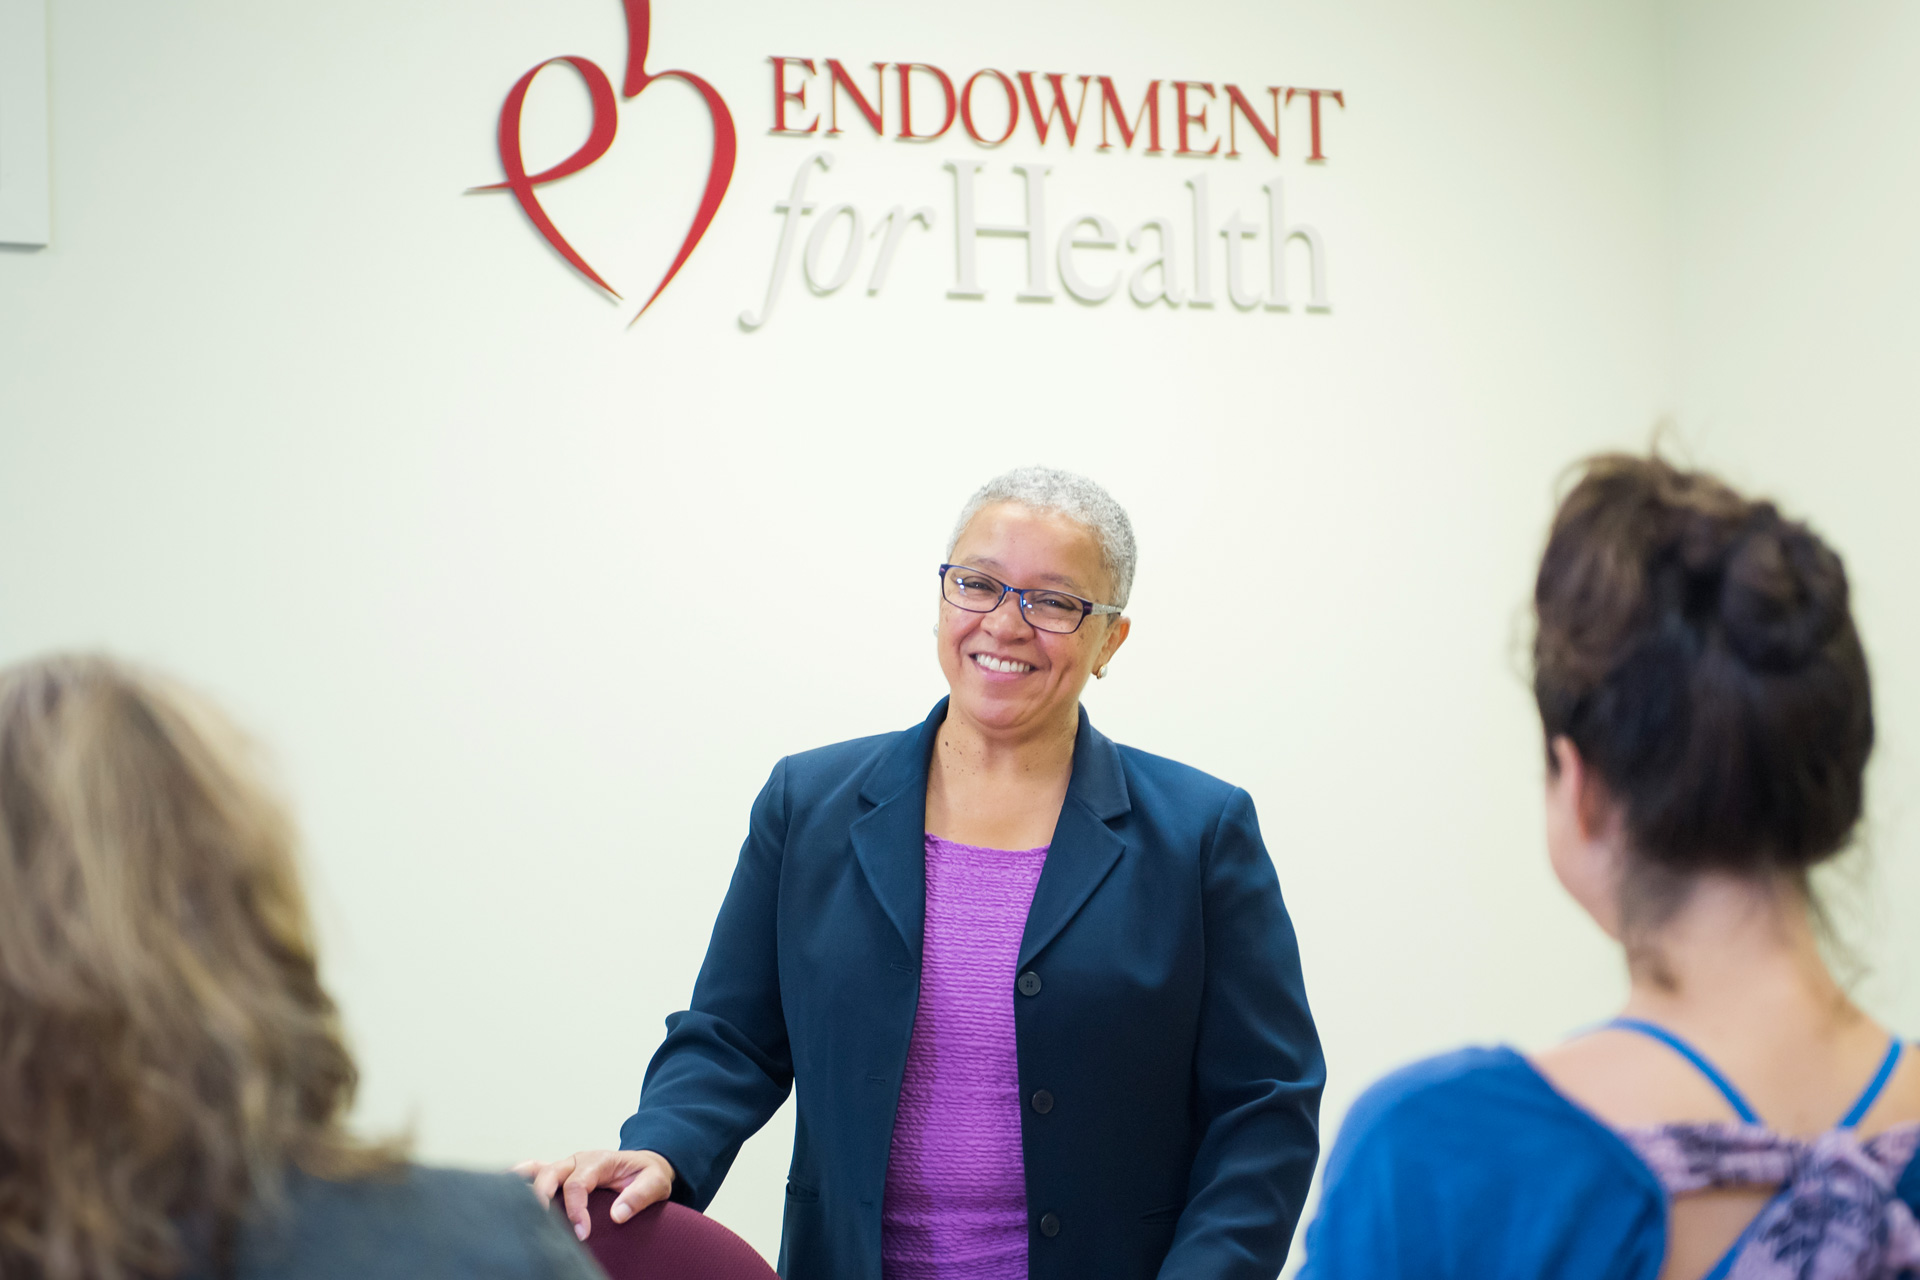 Woman speaks to visitors with Endowment for Health logo behind her